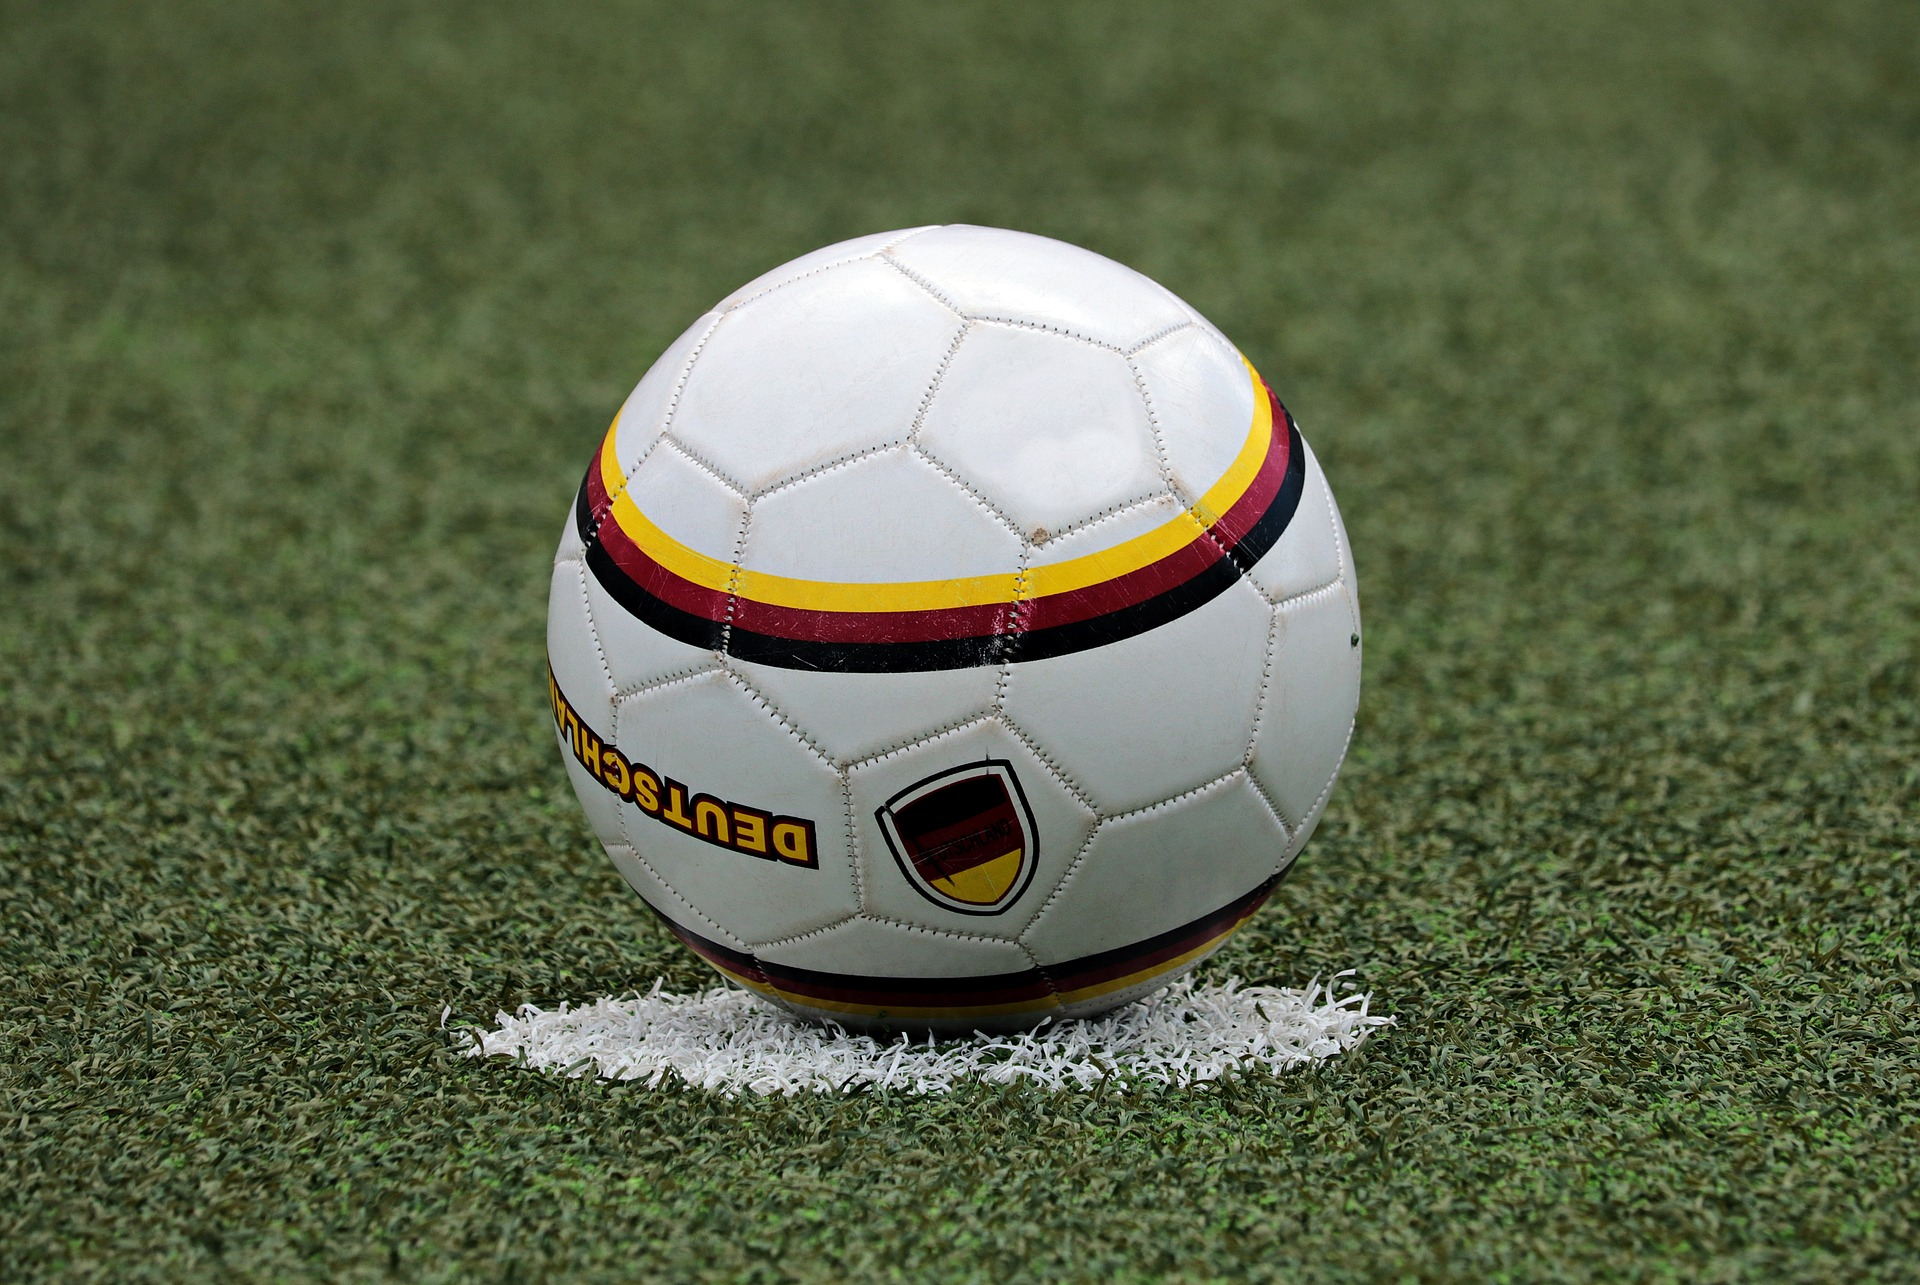 There Are Different Kinds Of Soccer Ball